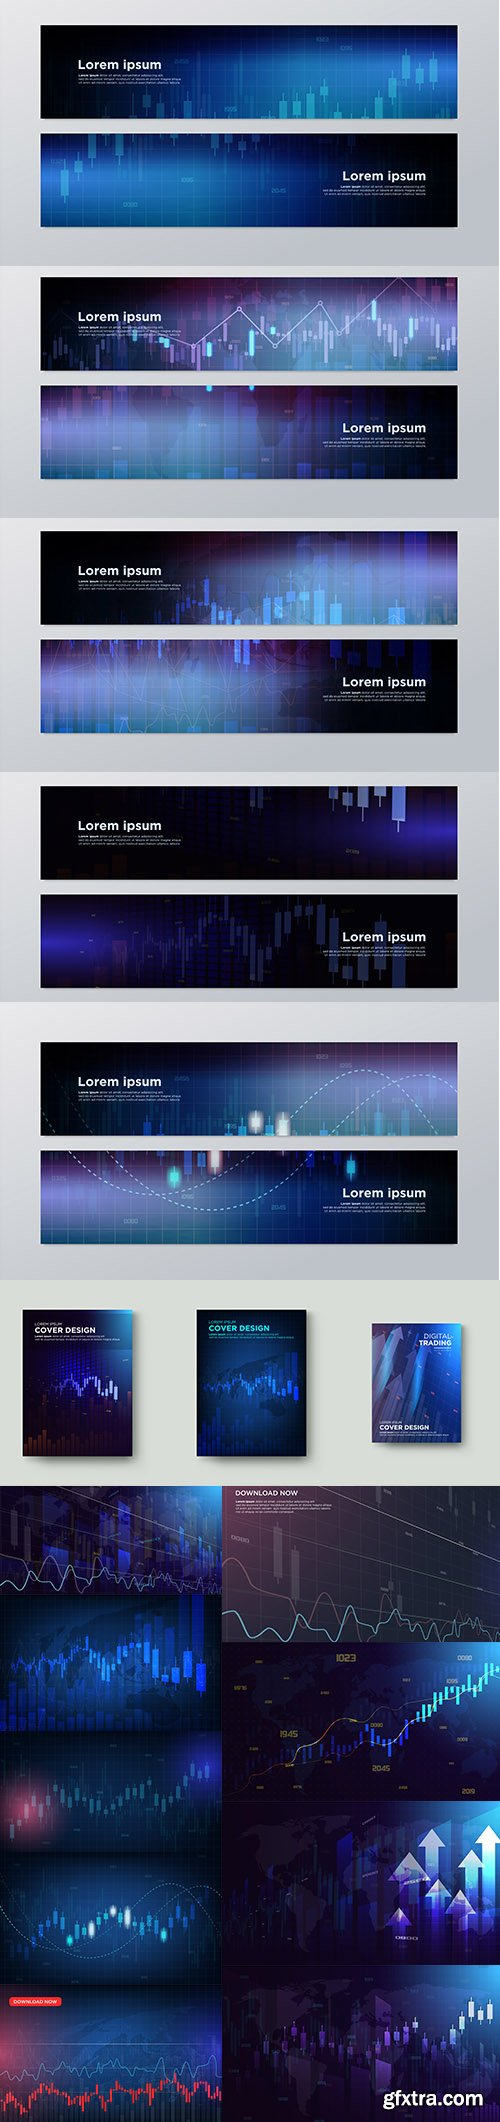 Trading Banners and Backgrounds Premium Vector Set